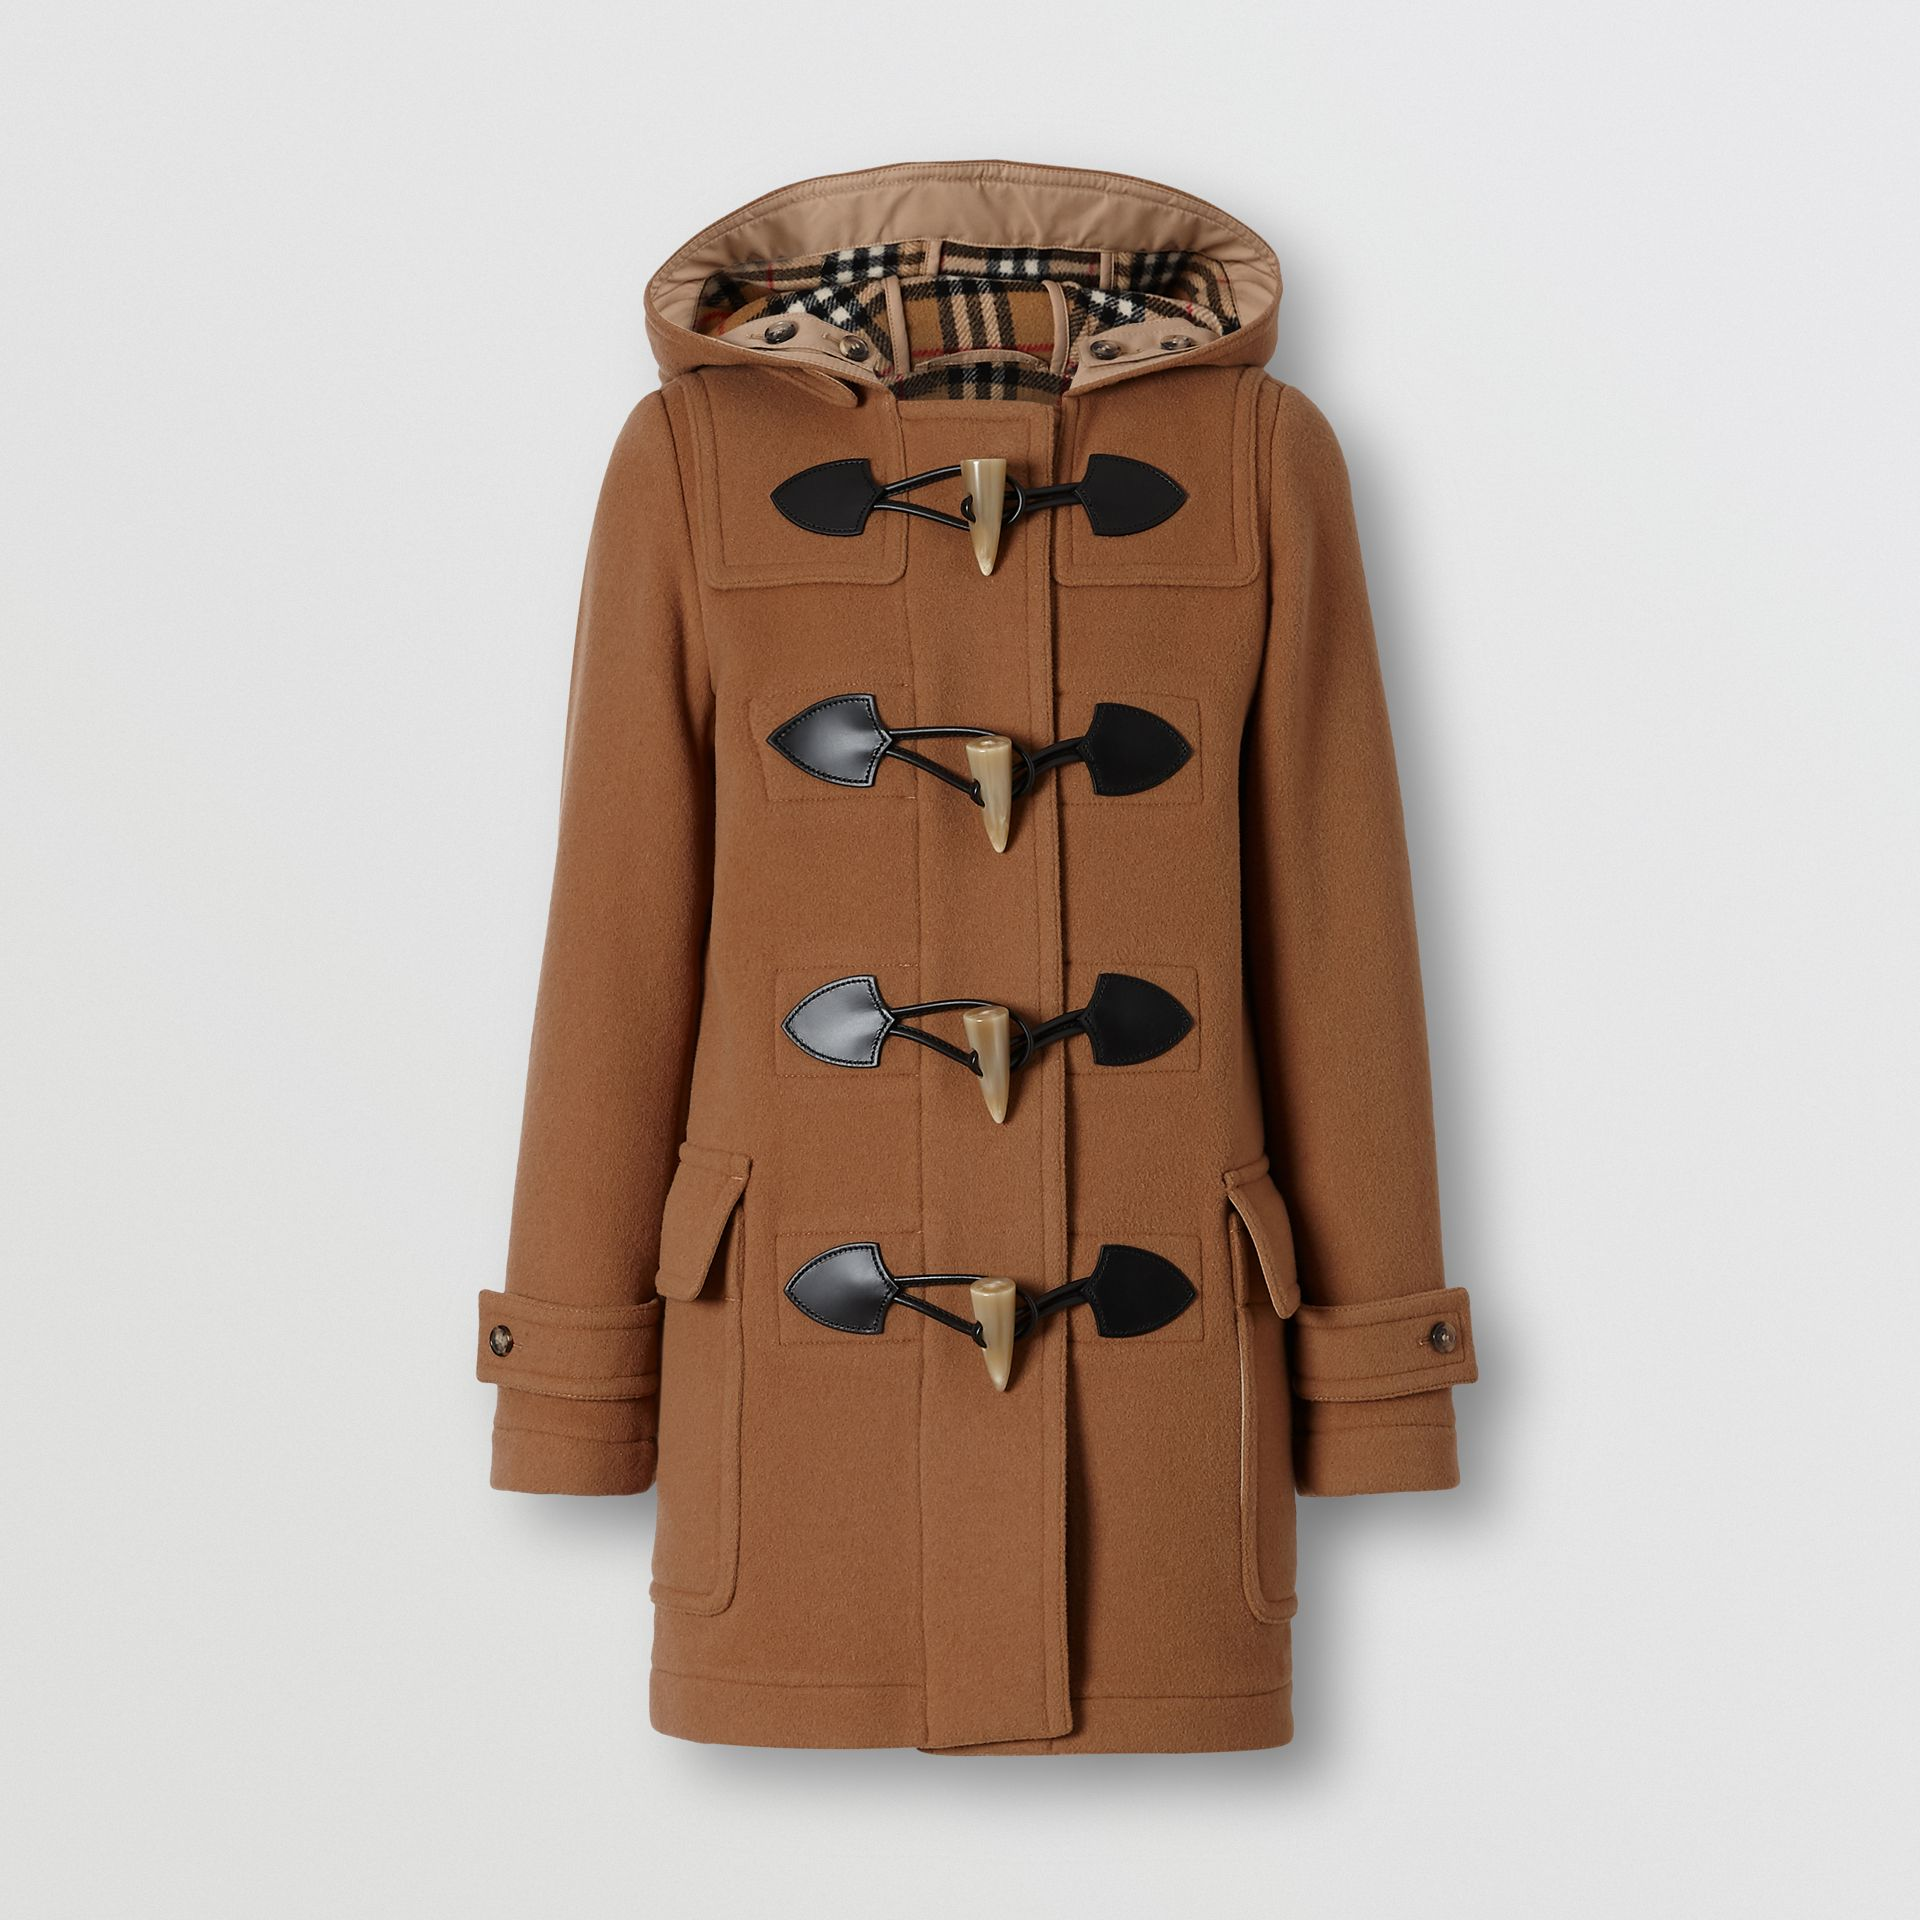 Wool Blend Duffle Coat in Camel - Women | Burberry United States - gallery image 5